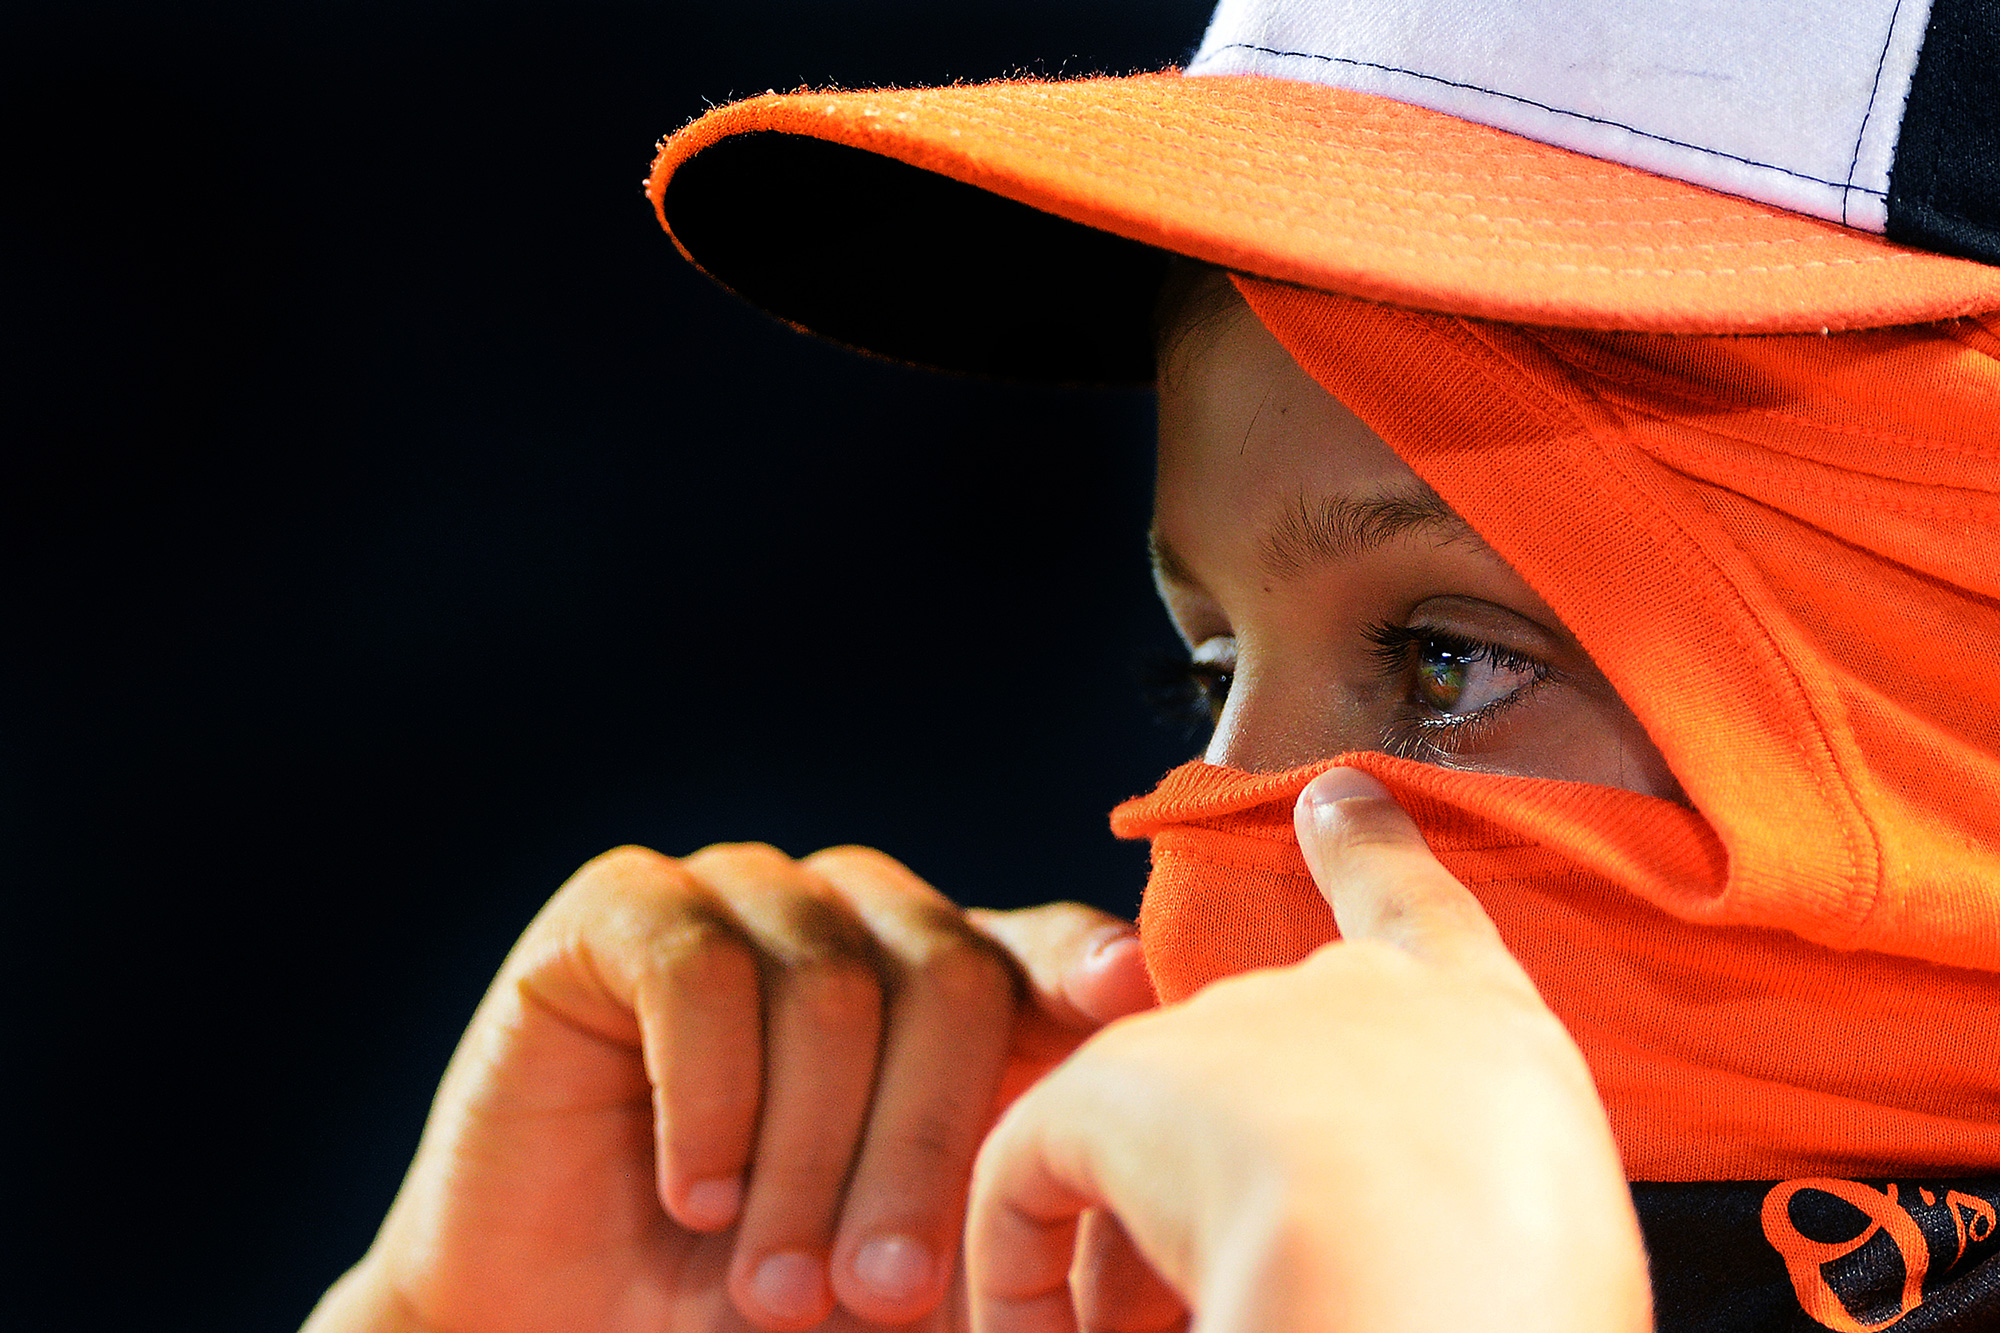 A fan creates a ninja mask out of a free giveaway shirt during a Baltimore Orioles home game on July 9, 2013 at Oriole Park at Camden Yards in Baltimore, Md.